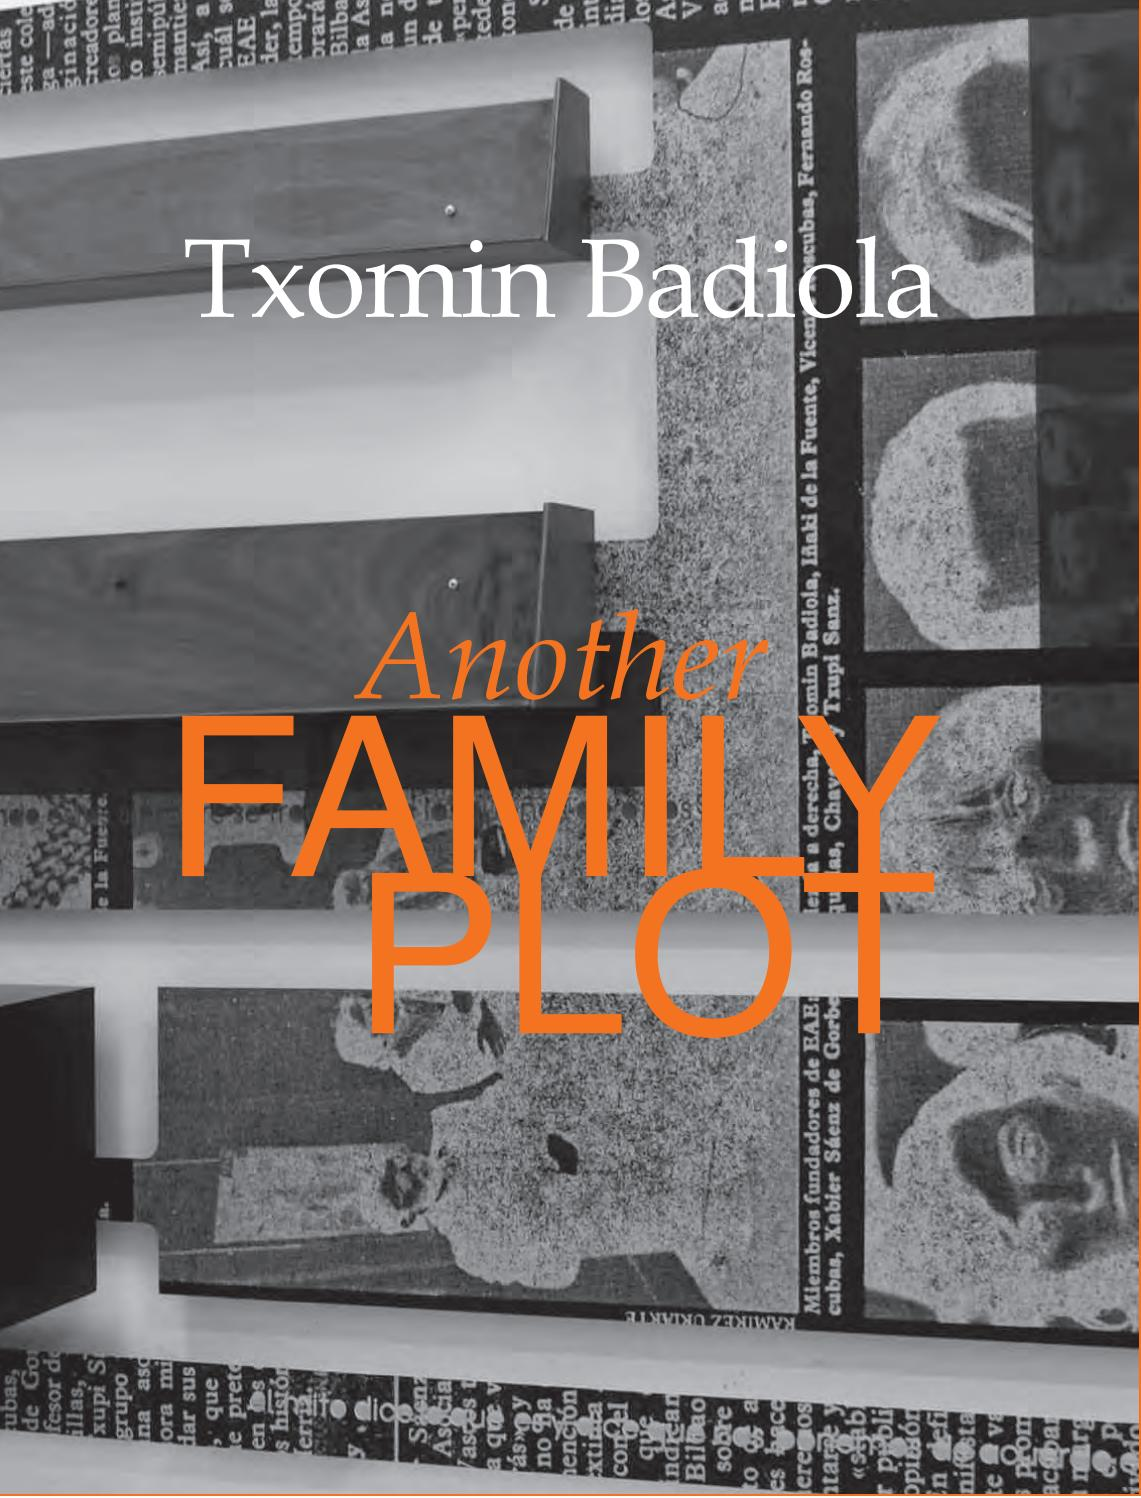 Txomin Badiola  Another Family Plot by Museo Reina Sofía - issuu